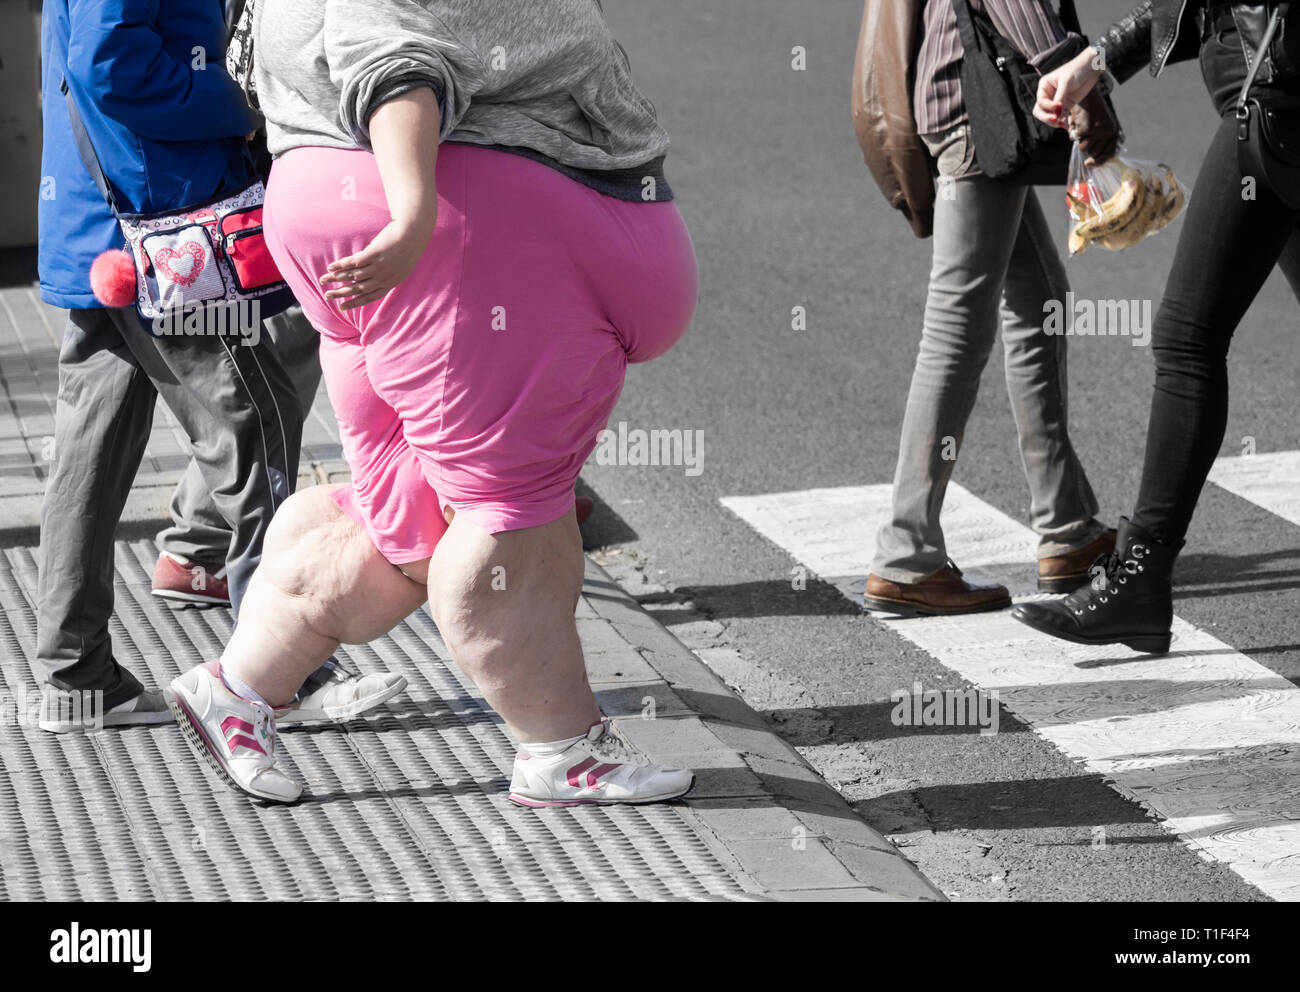 Fat Person Walking High Resolution Stock Photography And Images Alamy